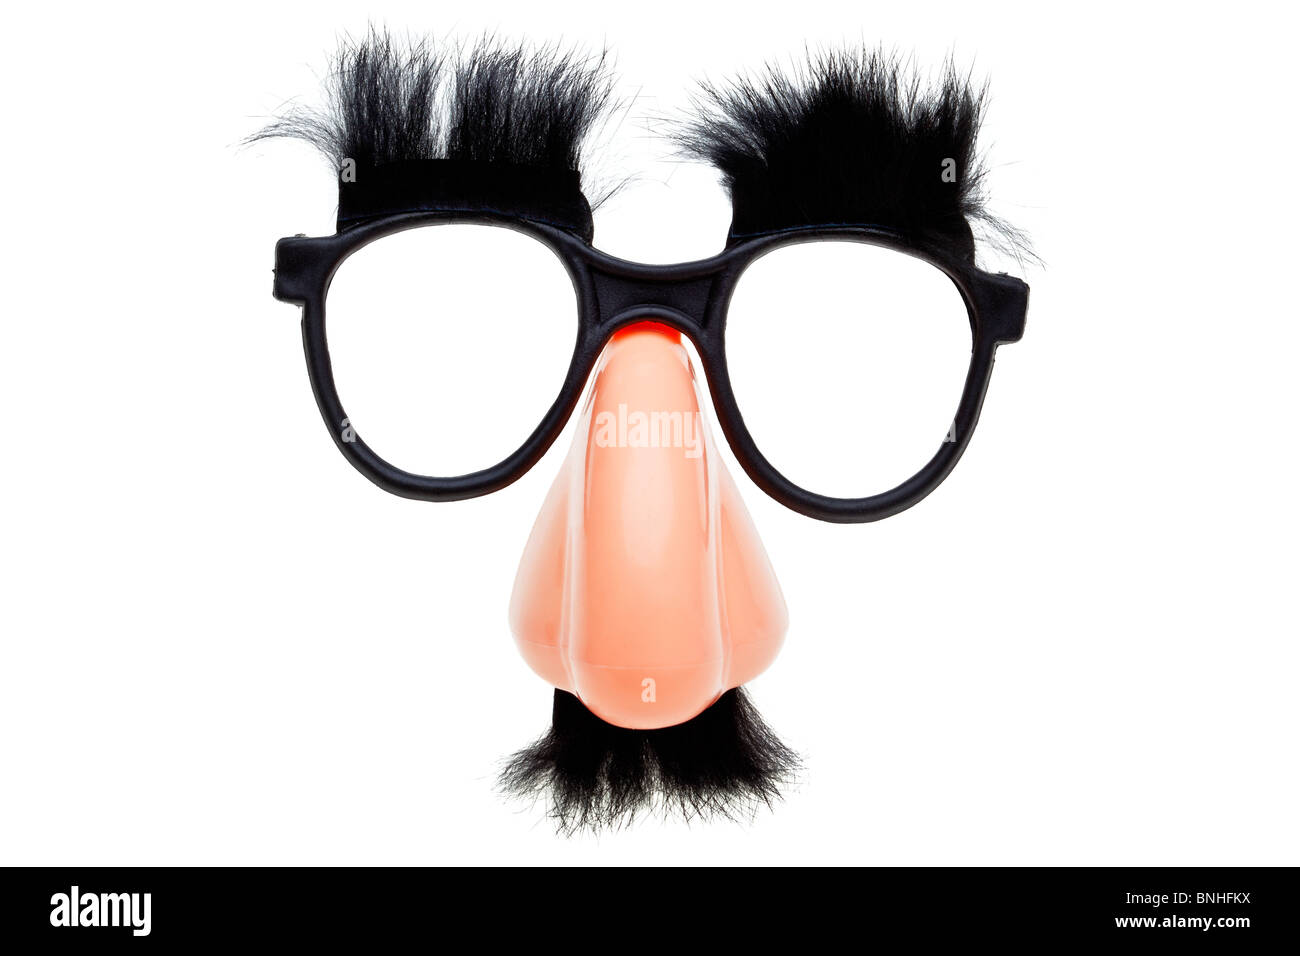 Photo of a pair of novelty glasses isolated on a white background - Stock Image